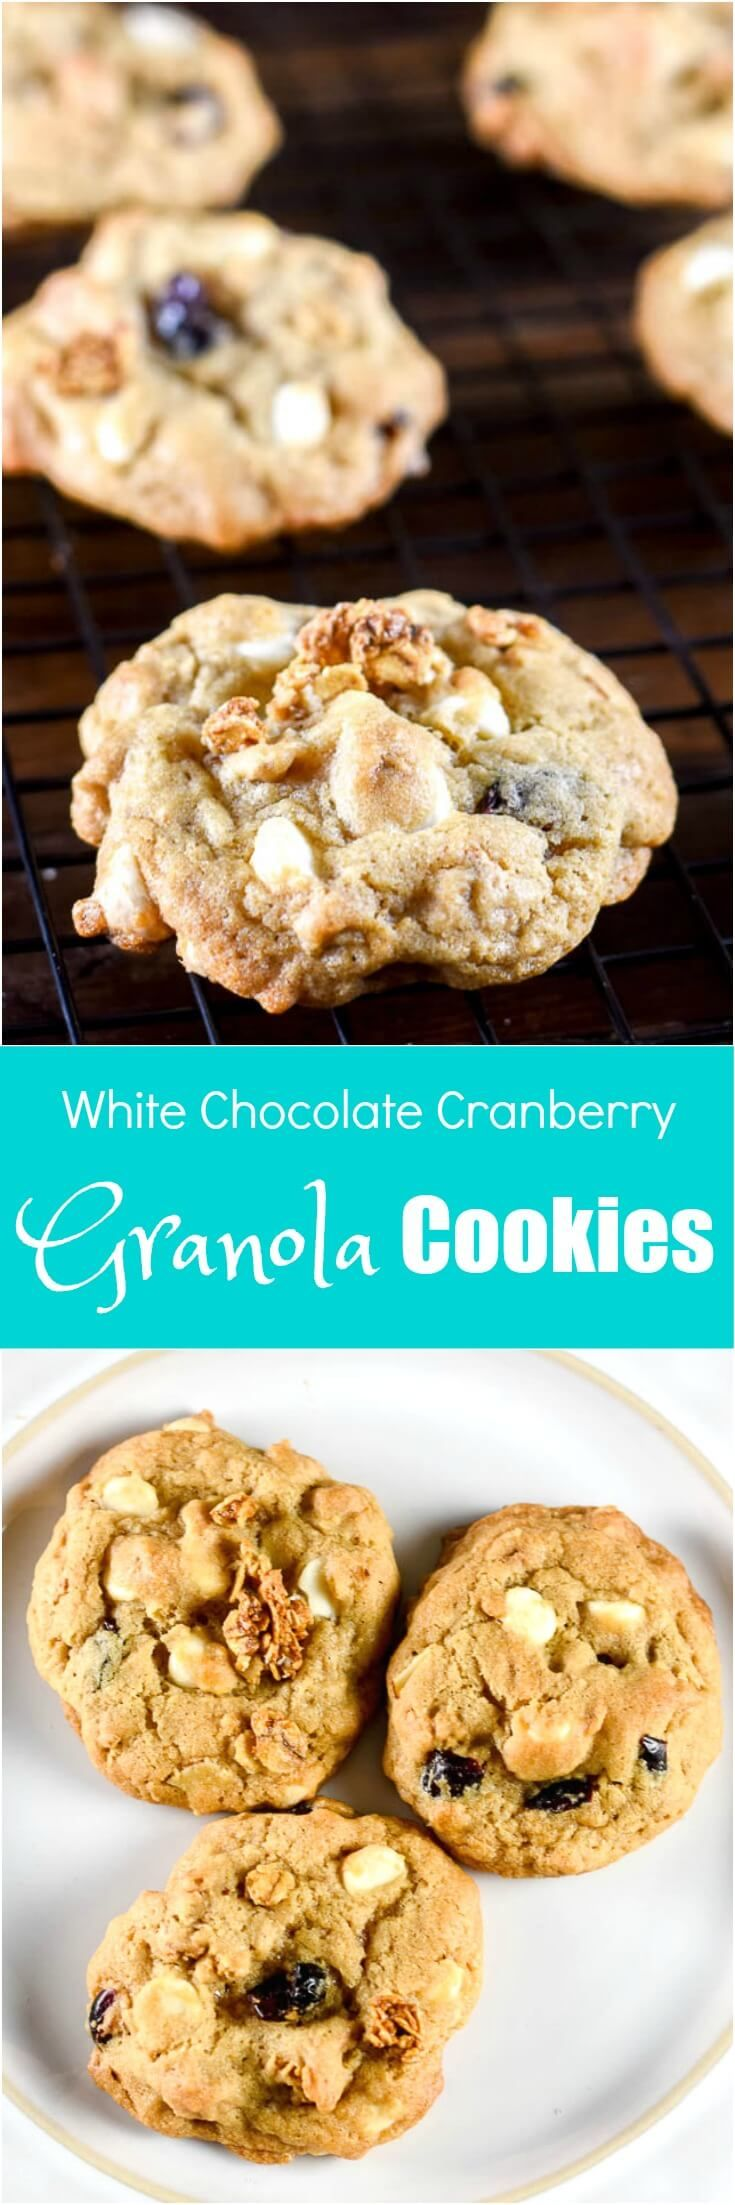 White Chocolate Cranberry Granola Cookies https://flavormosaic.com/white-chocolate-cranberry-granola-cookies/?utm_campaign=coschedule&utm_source=pinterest&utm_medium=Flavor%20Mosaic&utm_content=White%20Chocolate%20Cranberry%20Granola%20Cookies by Flavor Mosaic #SimplySatisfying #ad